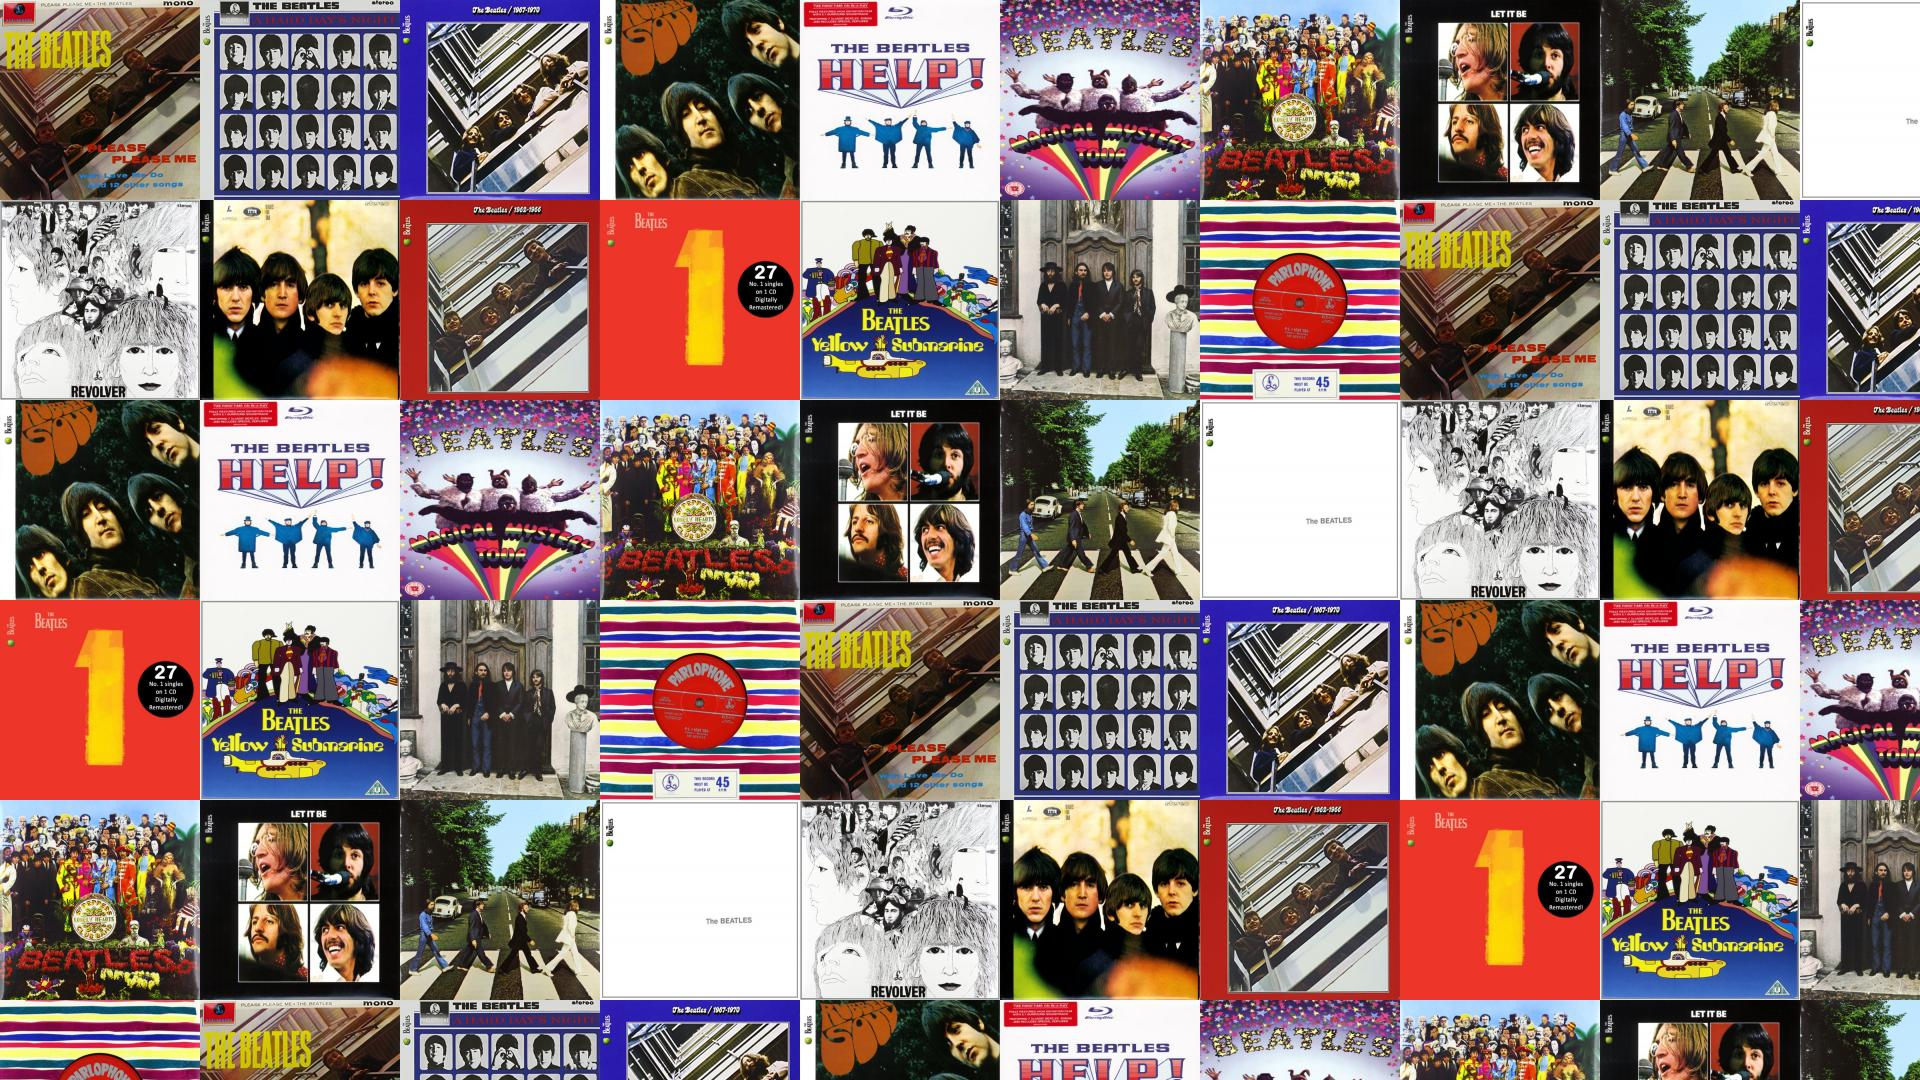 Download This Free Wallpaper With Images Of Beatles Please Me A Hard The Rubber Soul Help